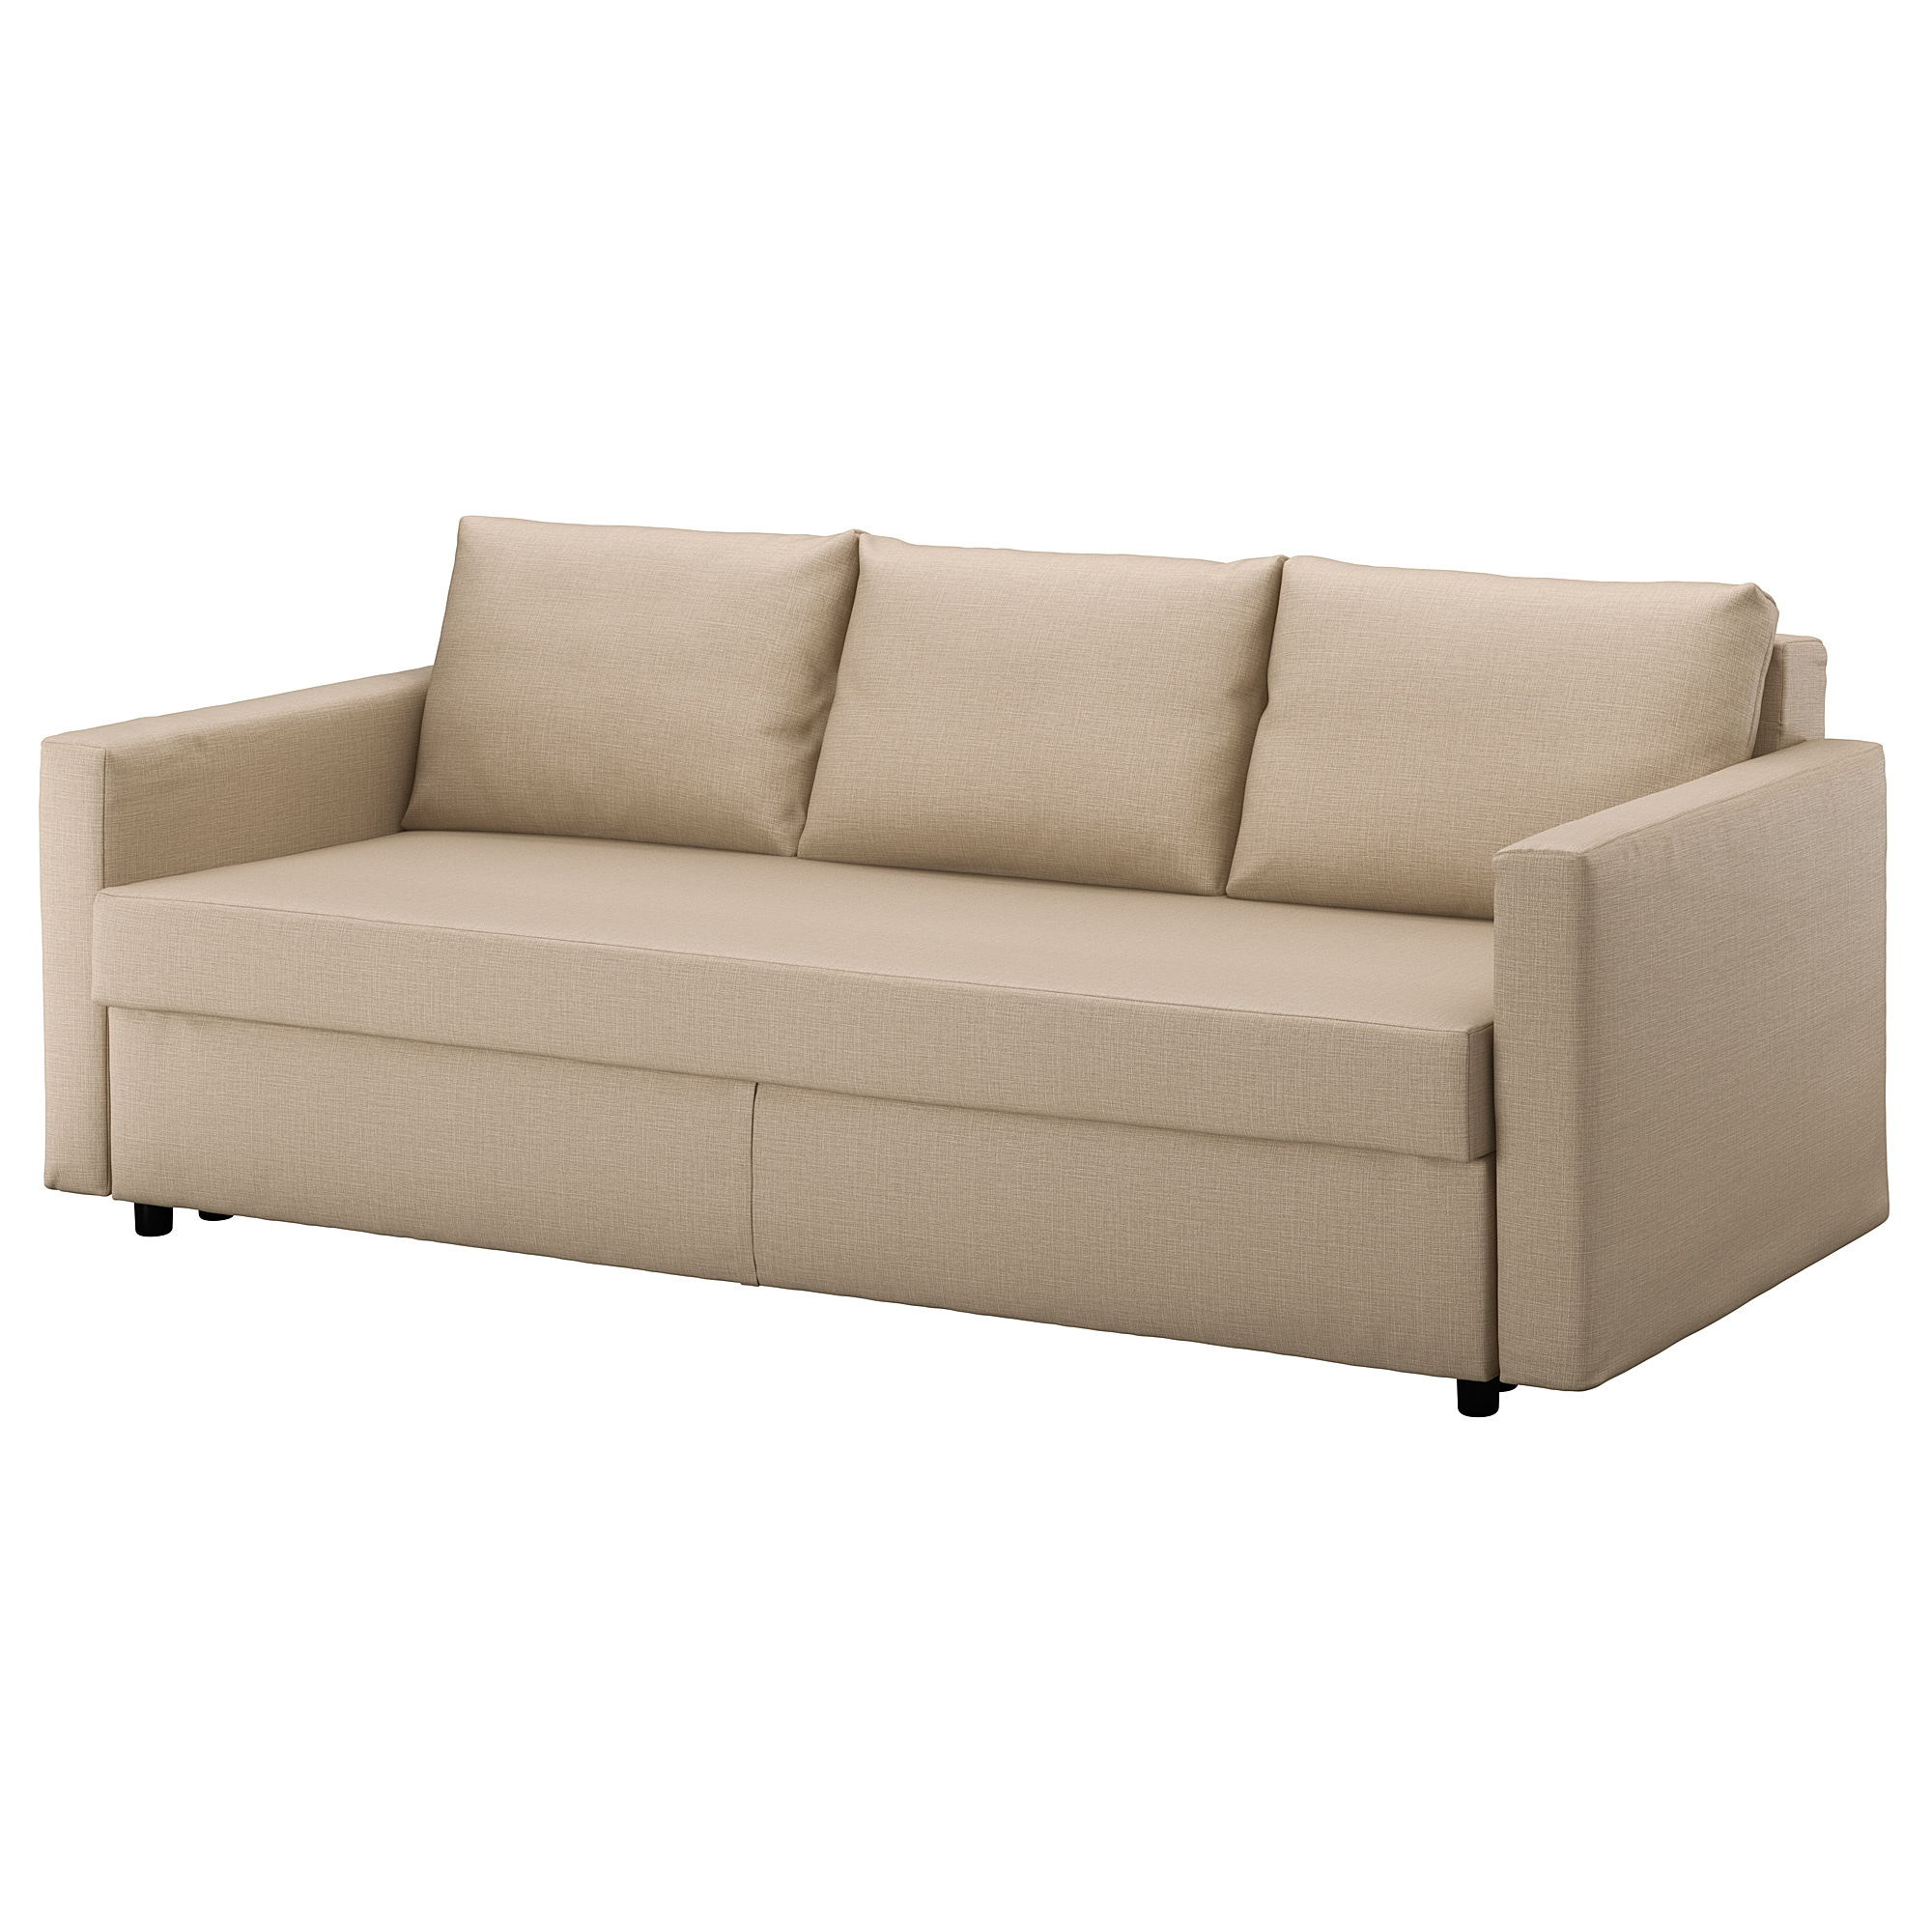 Sofa beds pull out beds IKEA